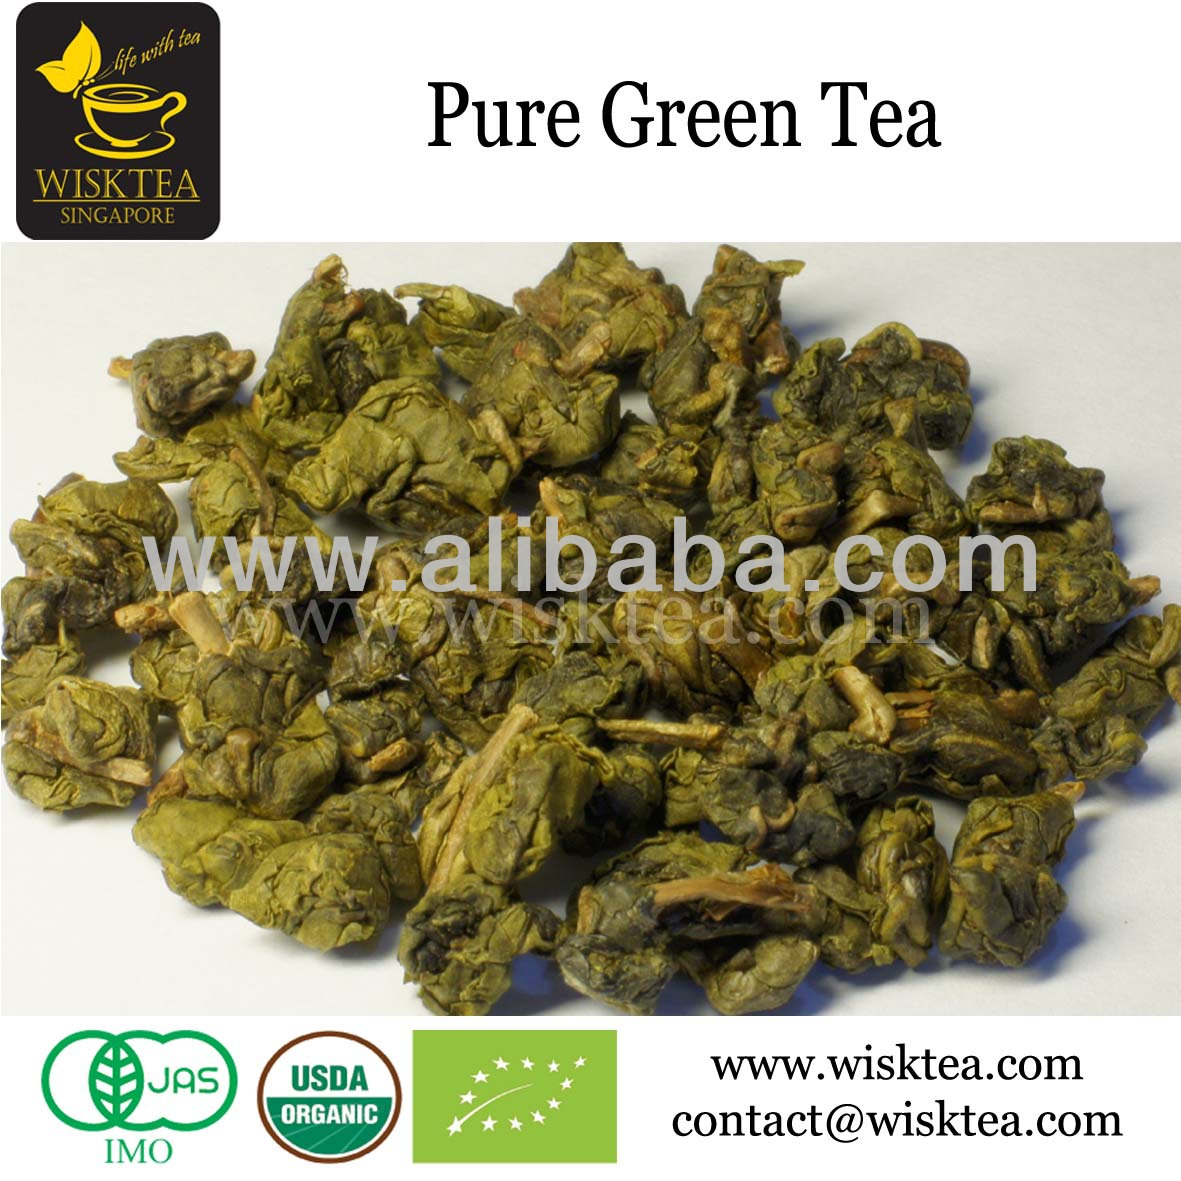 Certified Organic Premium Green Tea